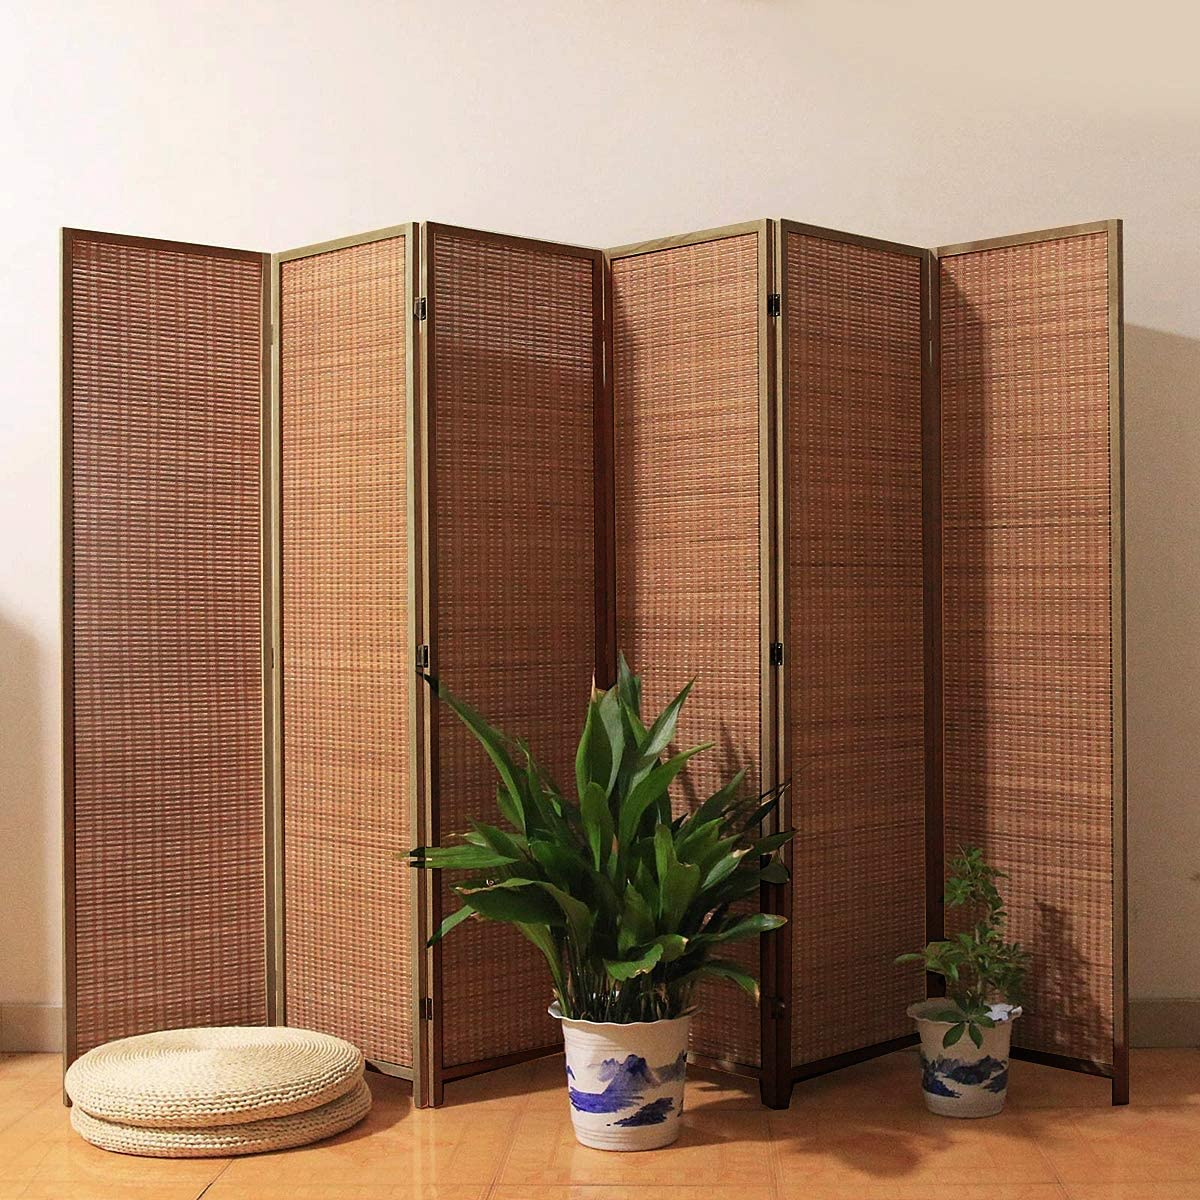 TinyTimes 6 FT Tall Bamboo Room Divider, 6 Panel Room Dividers & Folding Privacy Screens, Decorative Separation Wall Divider, Room Partitions, Freestanding - Brown, 6 Panel